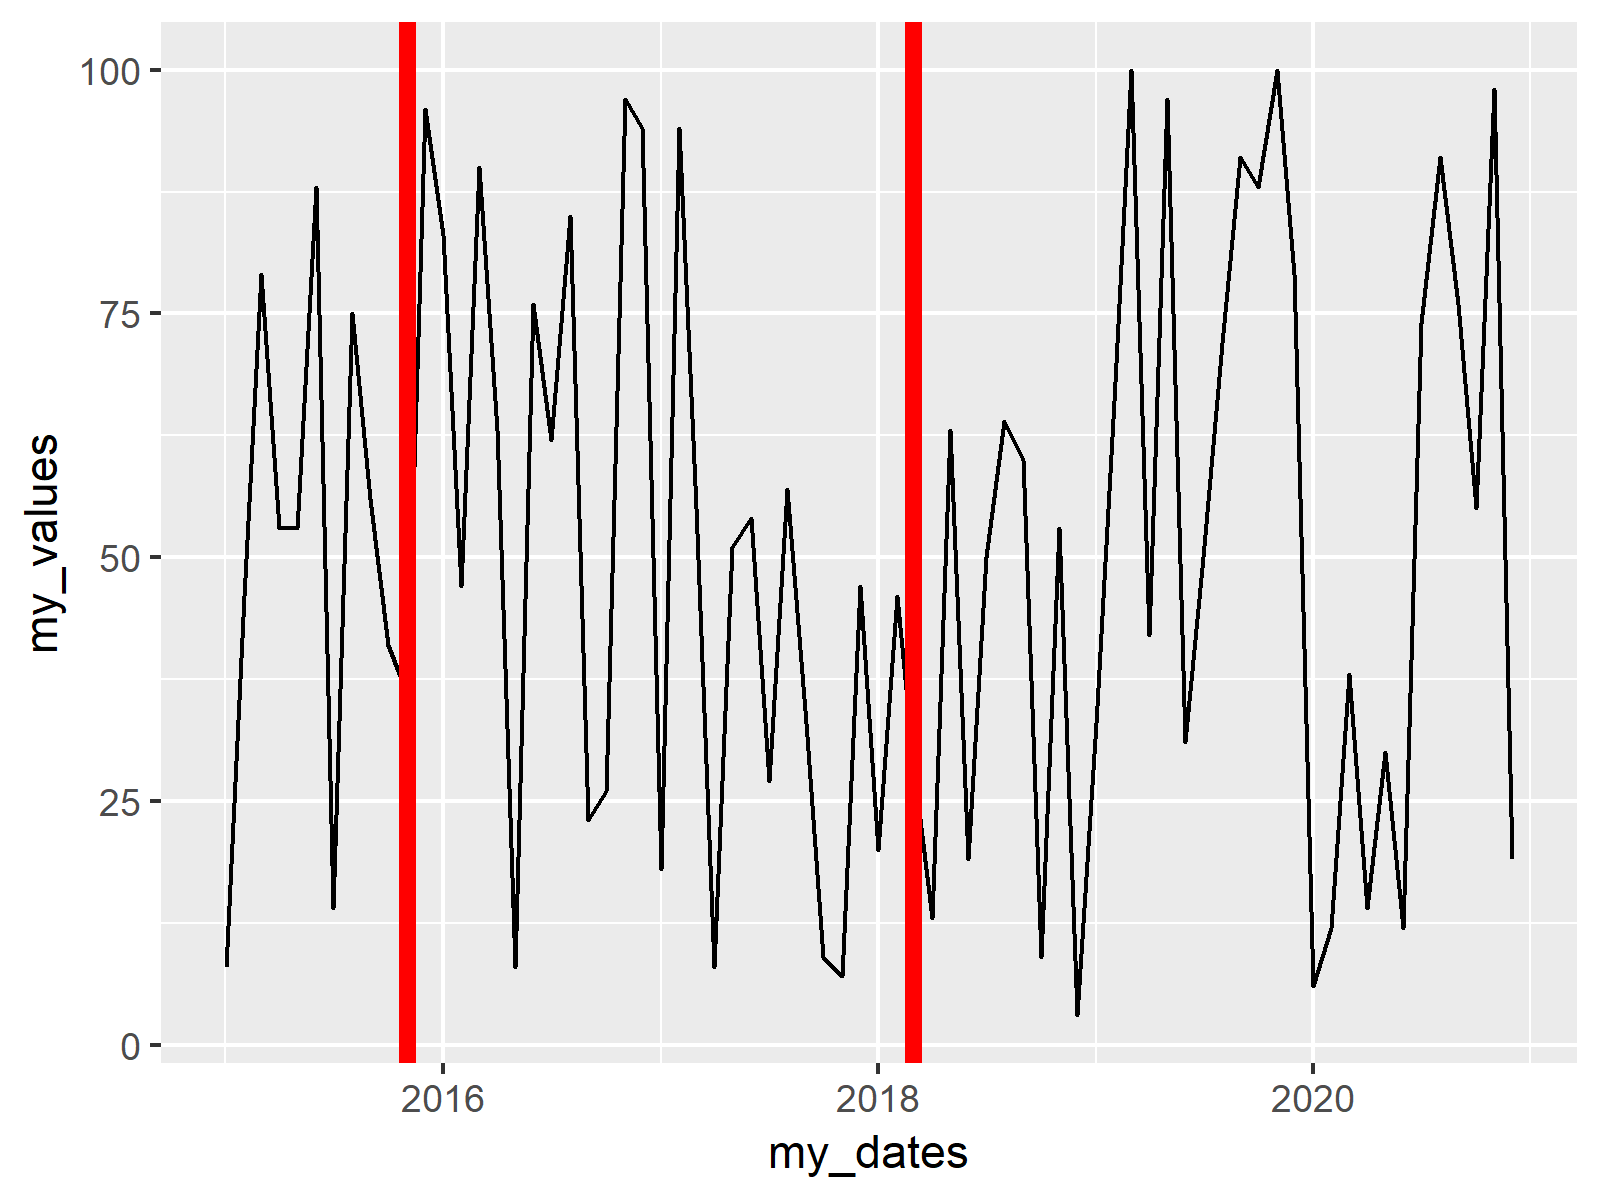 ggplot2 graphics with vertical lines at date position